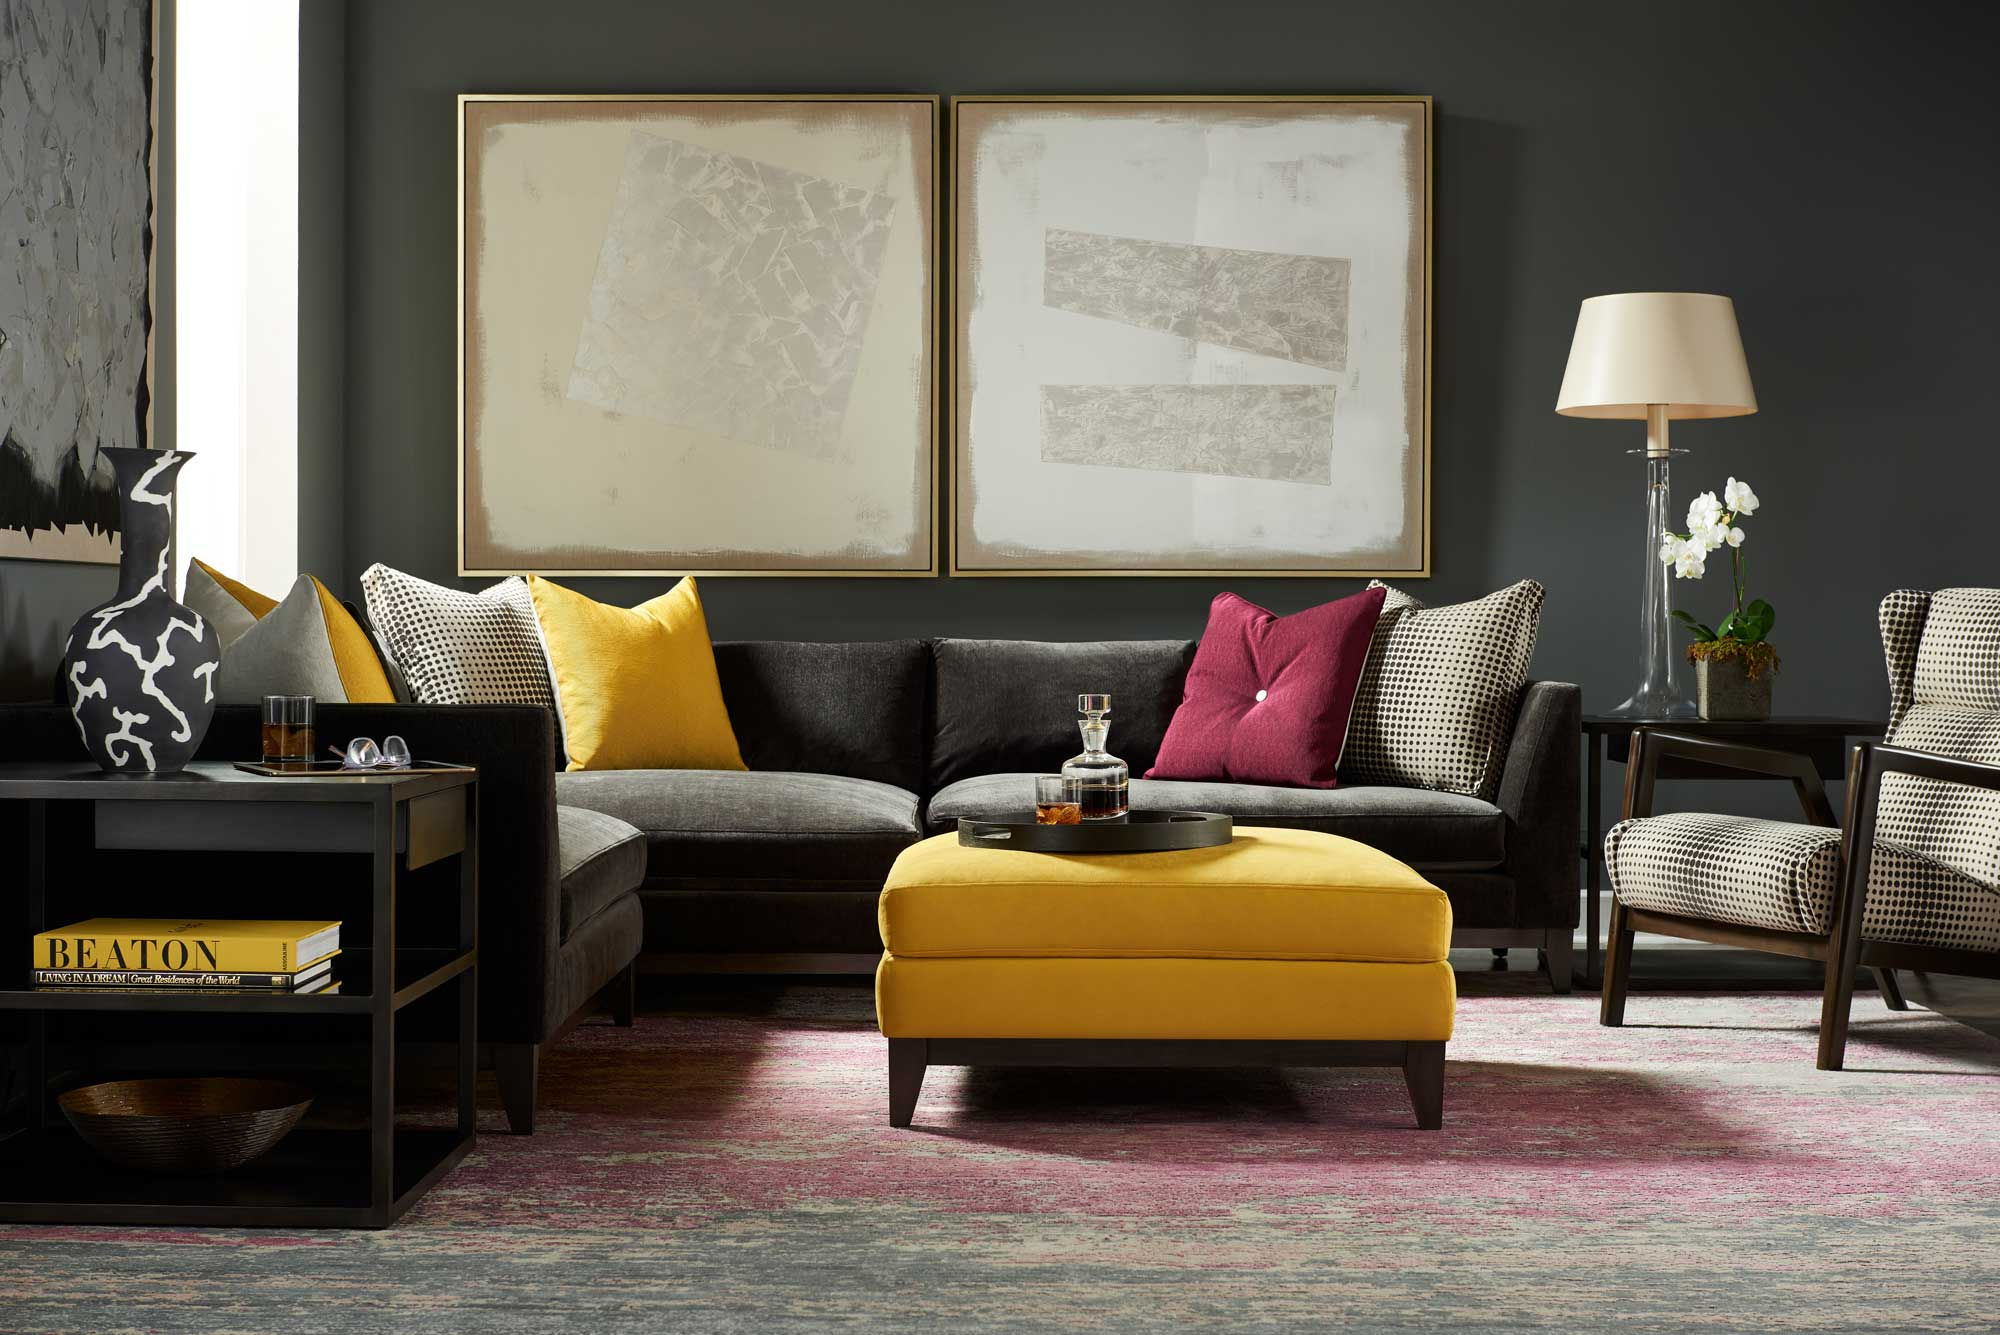 greenfront furniture sofas how to clean sofa cushions lillian august modern living green front